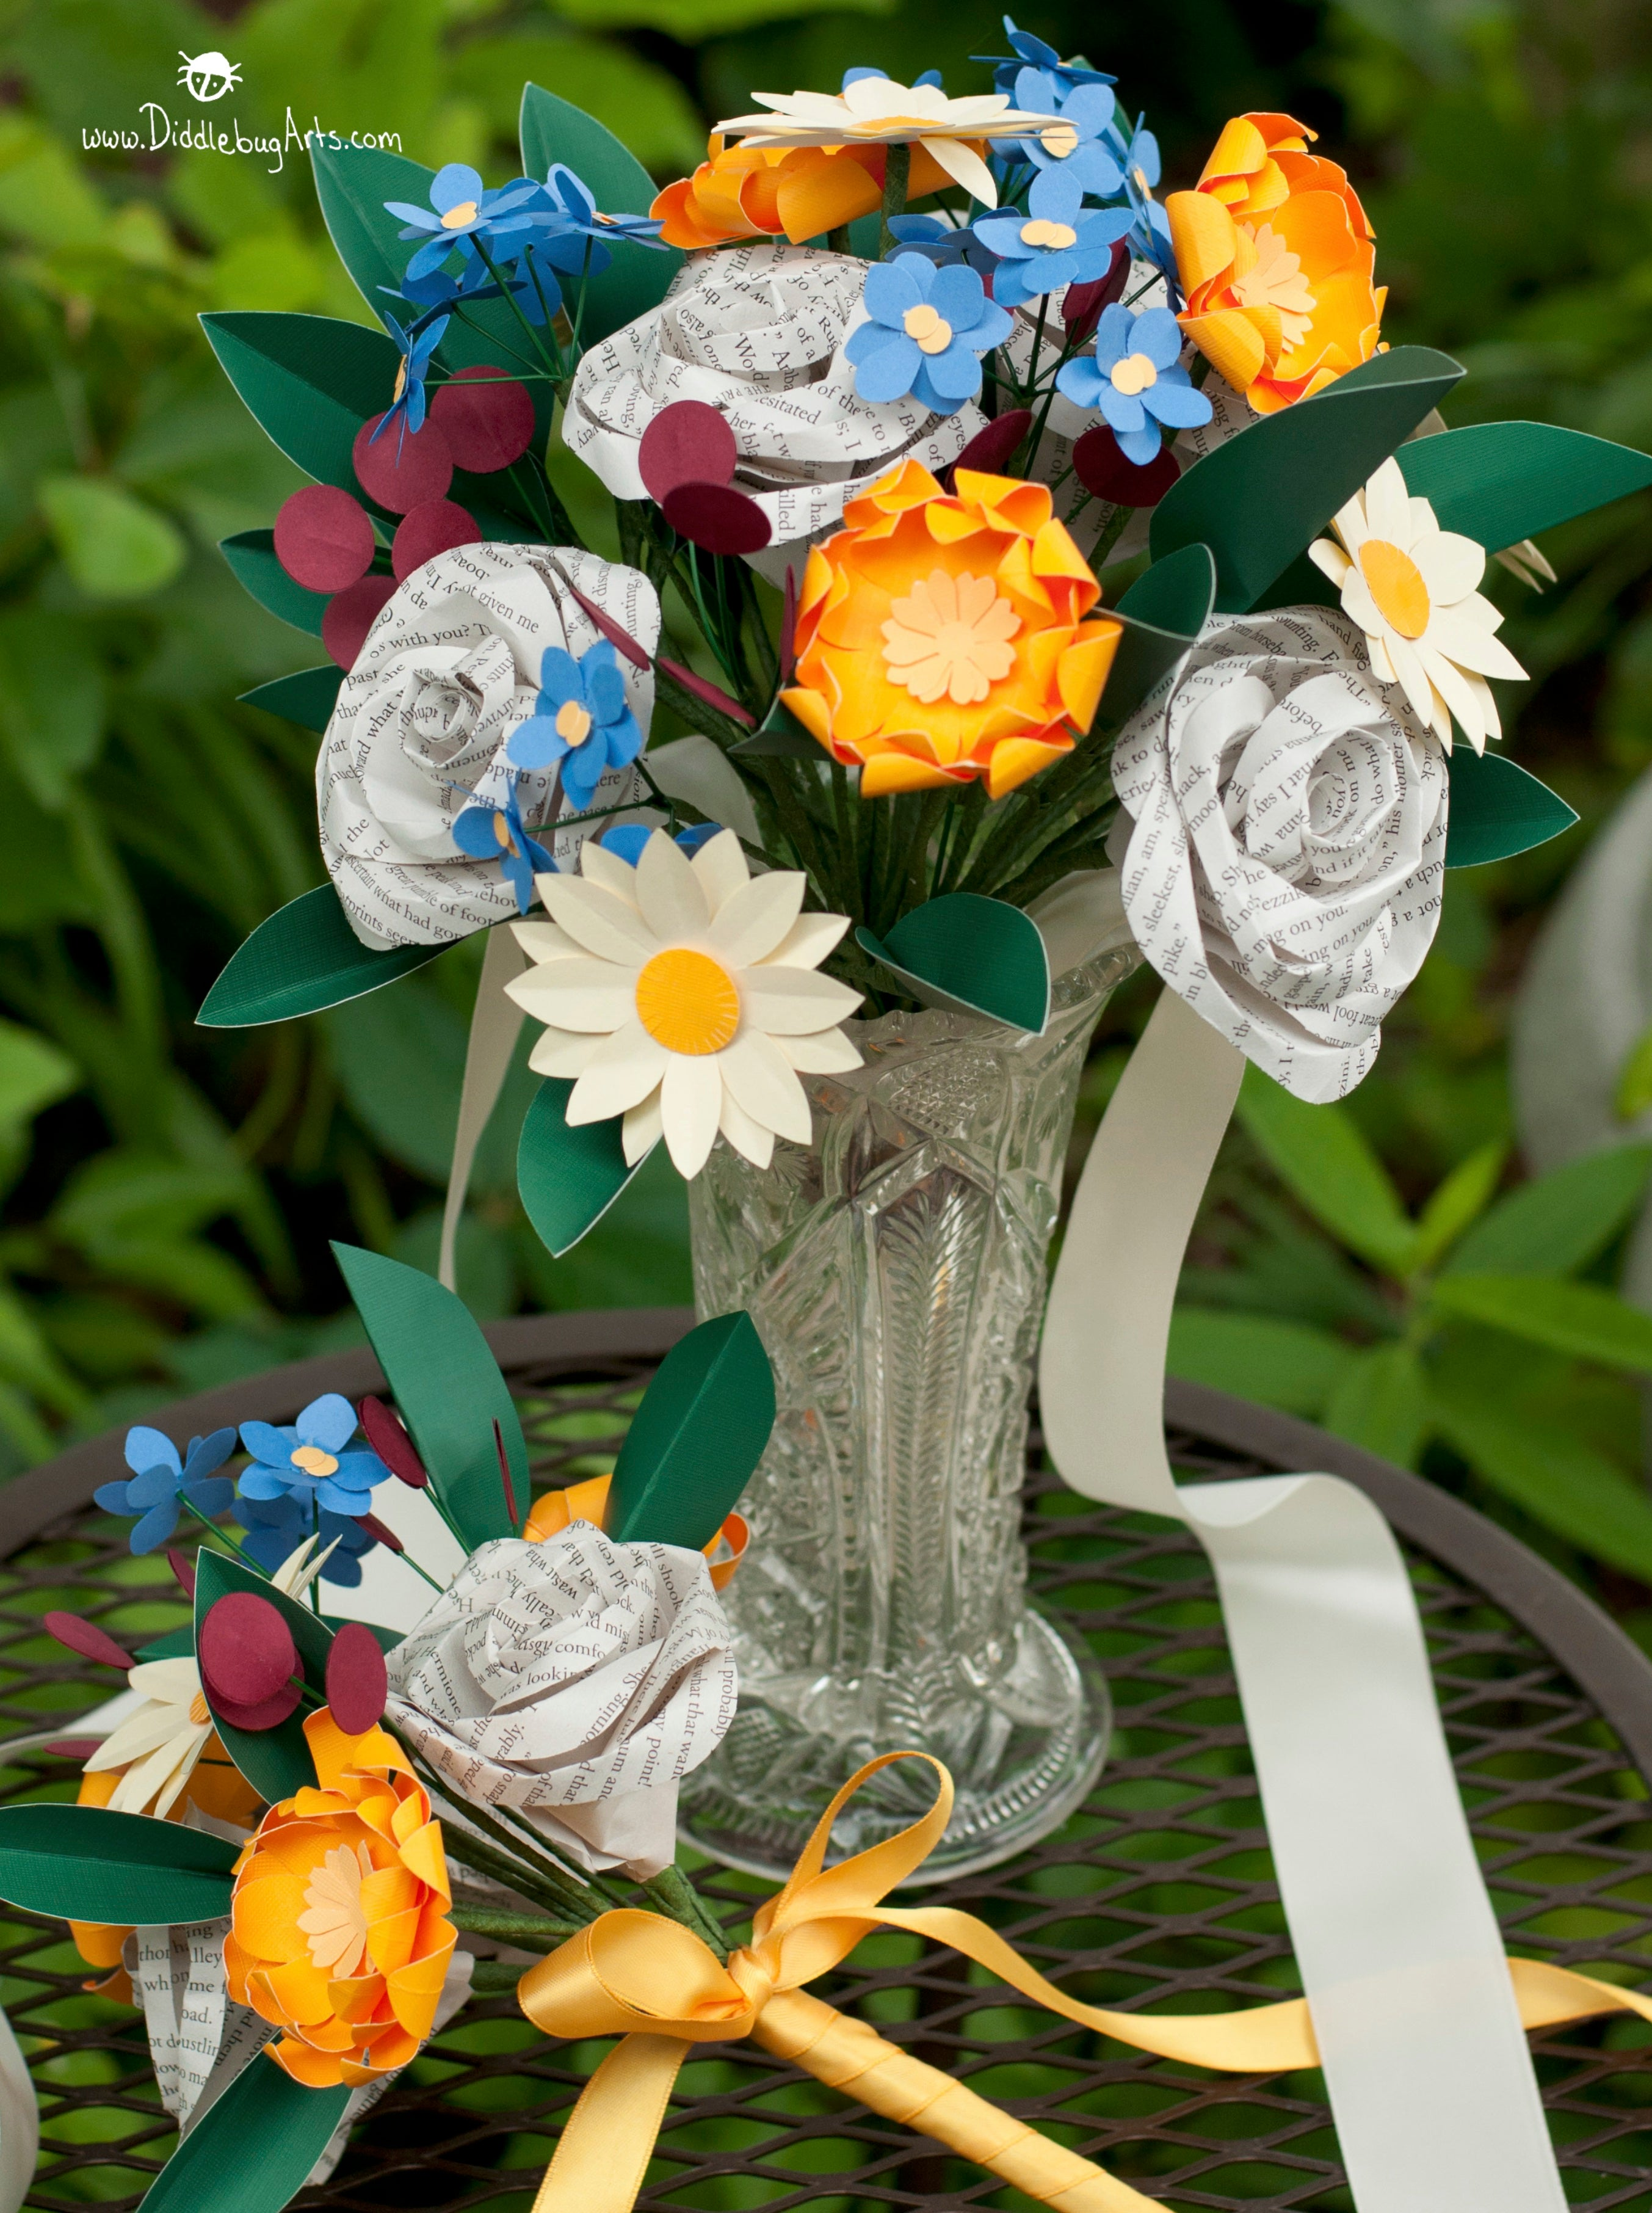 Bridal bouquet in a vase made of paper book page and colored flowers and a matching bridesmaid bouquet sitting next to  the vase